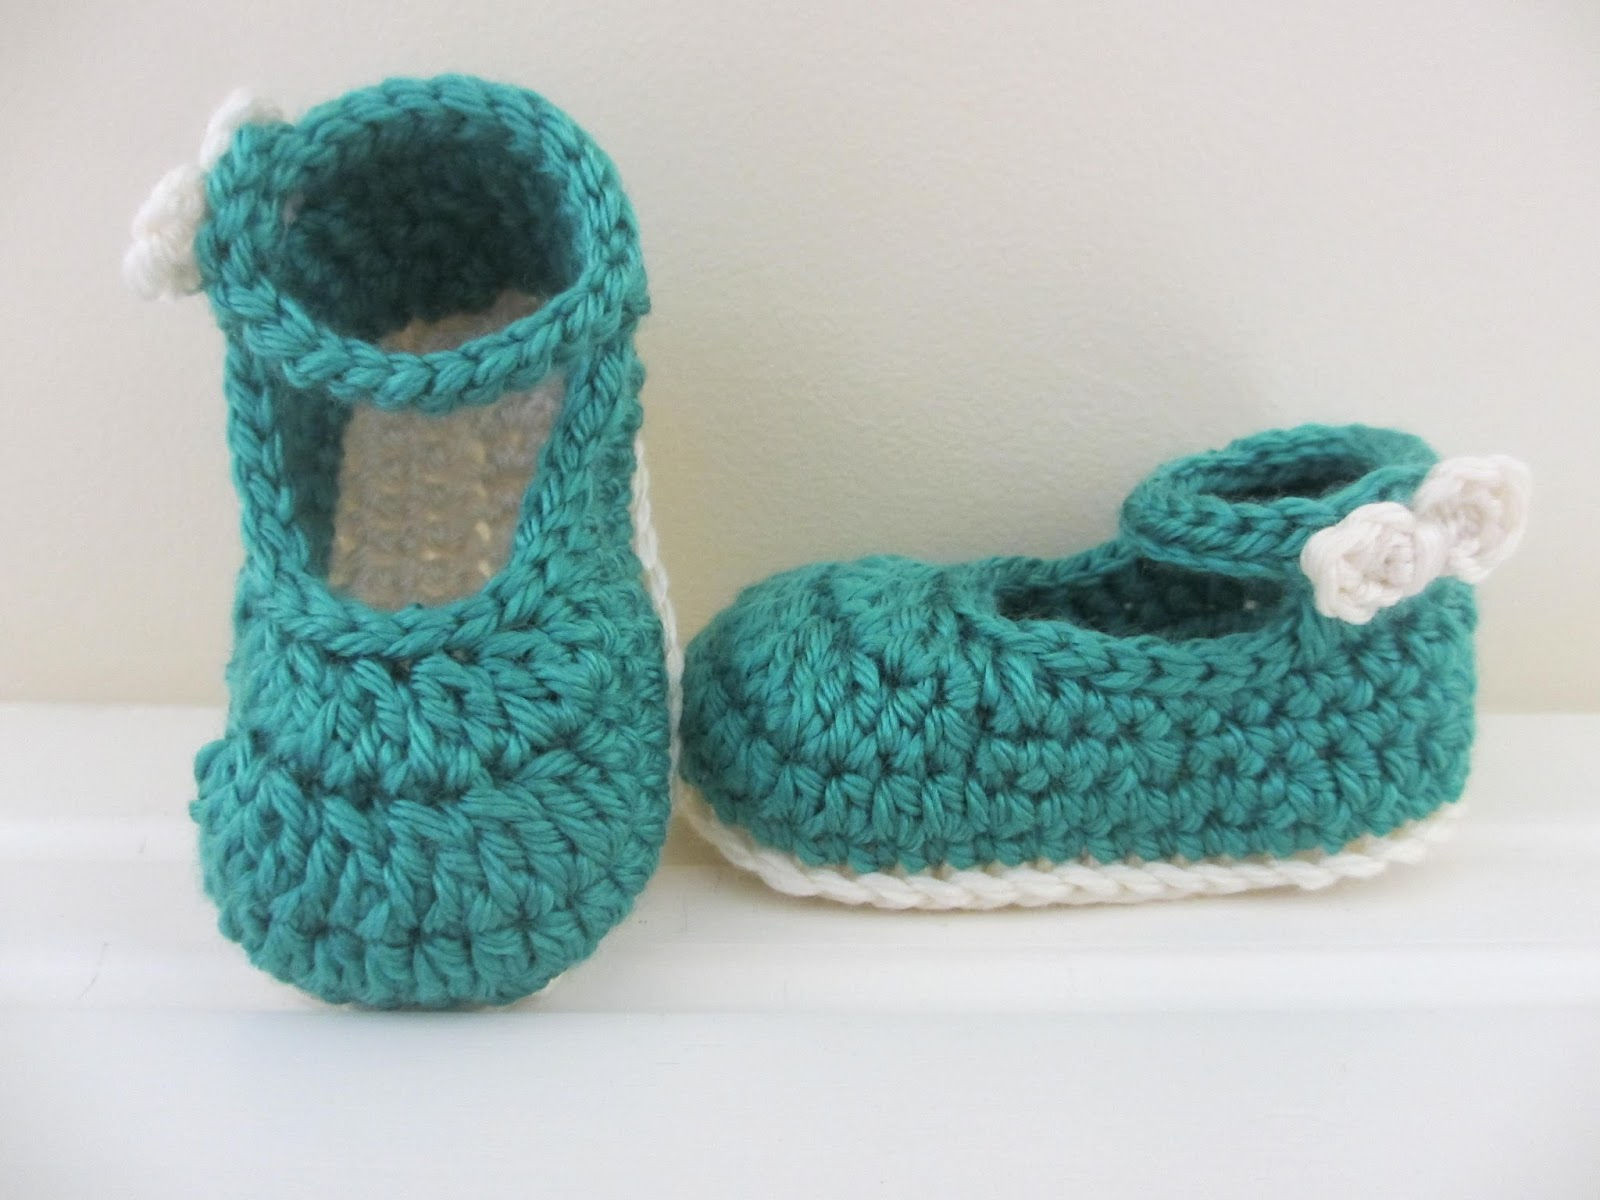 Free Crochet Patterns for Baby Shoes Inspirational Crochet Mary Jane Baby Slippers Pattern Free Of Wonderful 50 Photos Free Crochet Patterns for Baby Shoes